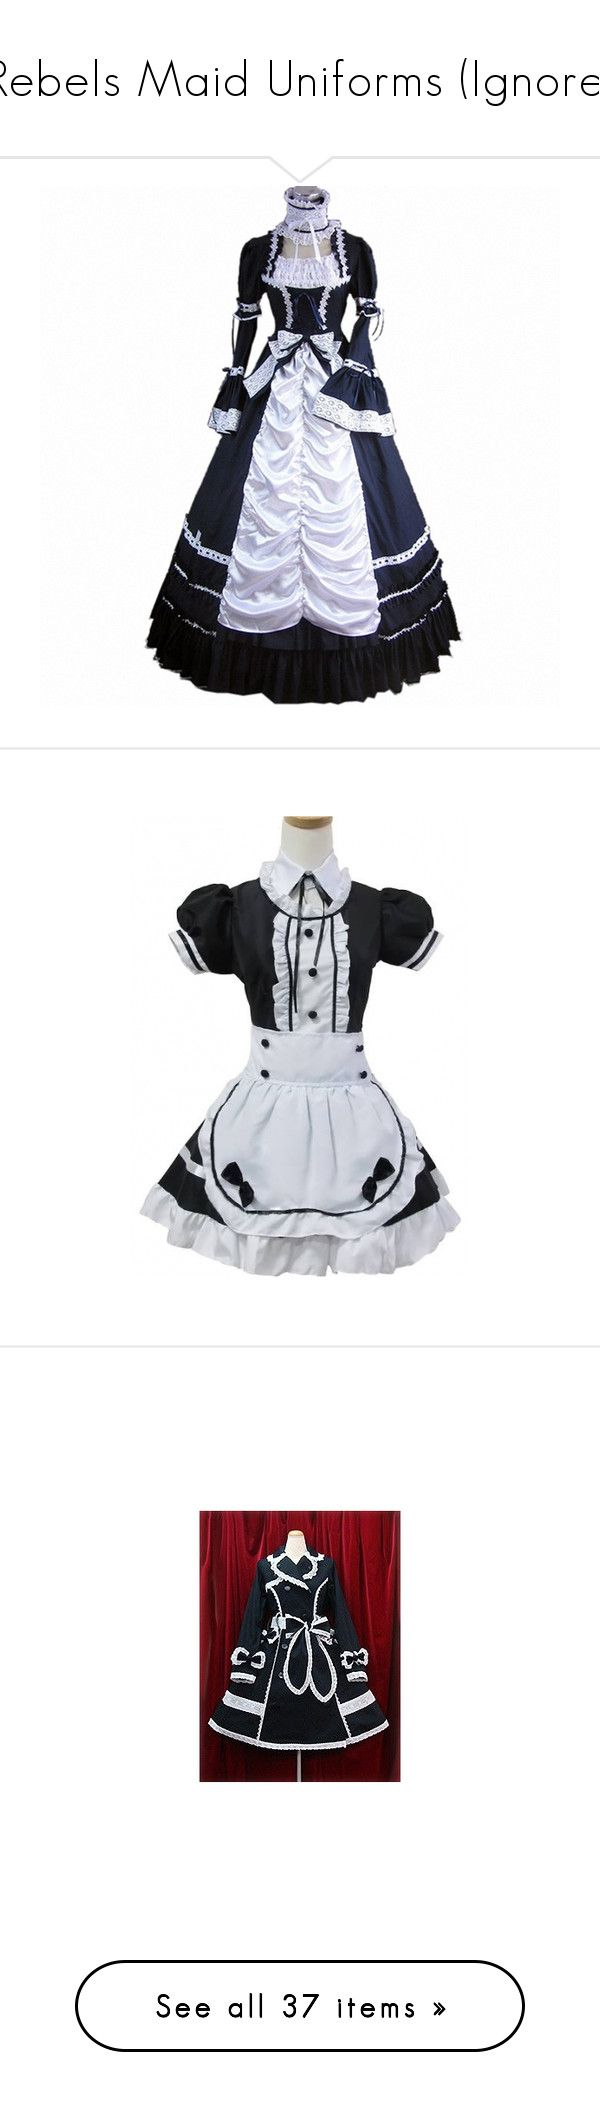 """""""Rebels Maid Uniforms (Ignore)"""" by neverland-is-just-a-dream-away ❤ liked on Polyvore featuring dresses, vintage, white and black dress, black white dress, black and white dress, white black dress, jackets, long sleeve dress, black and white long sleeve dress and white and black strapless dress"""